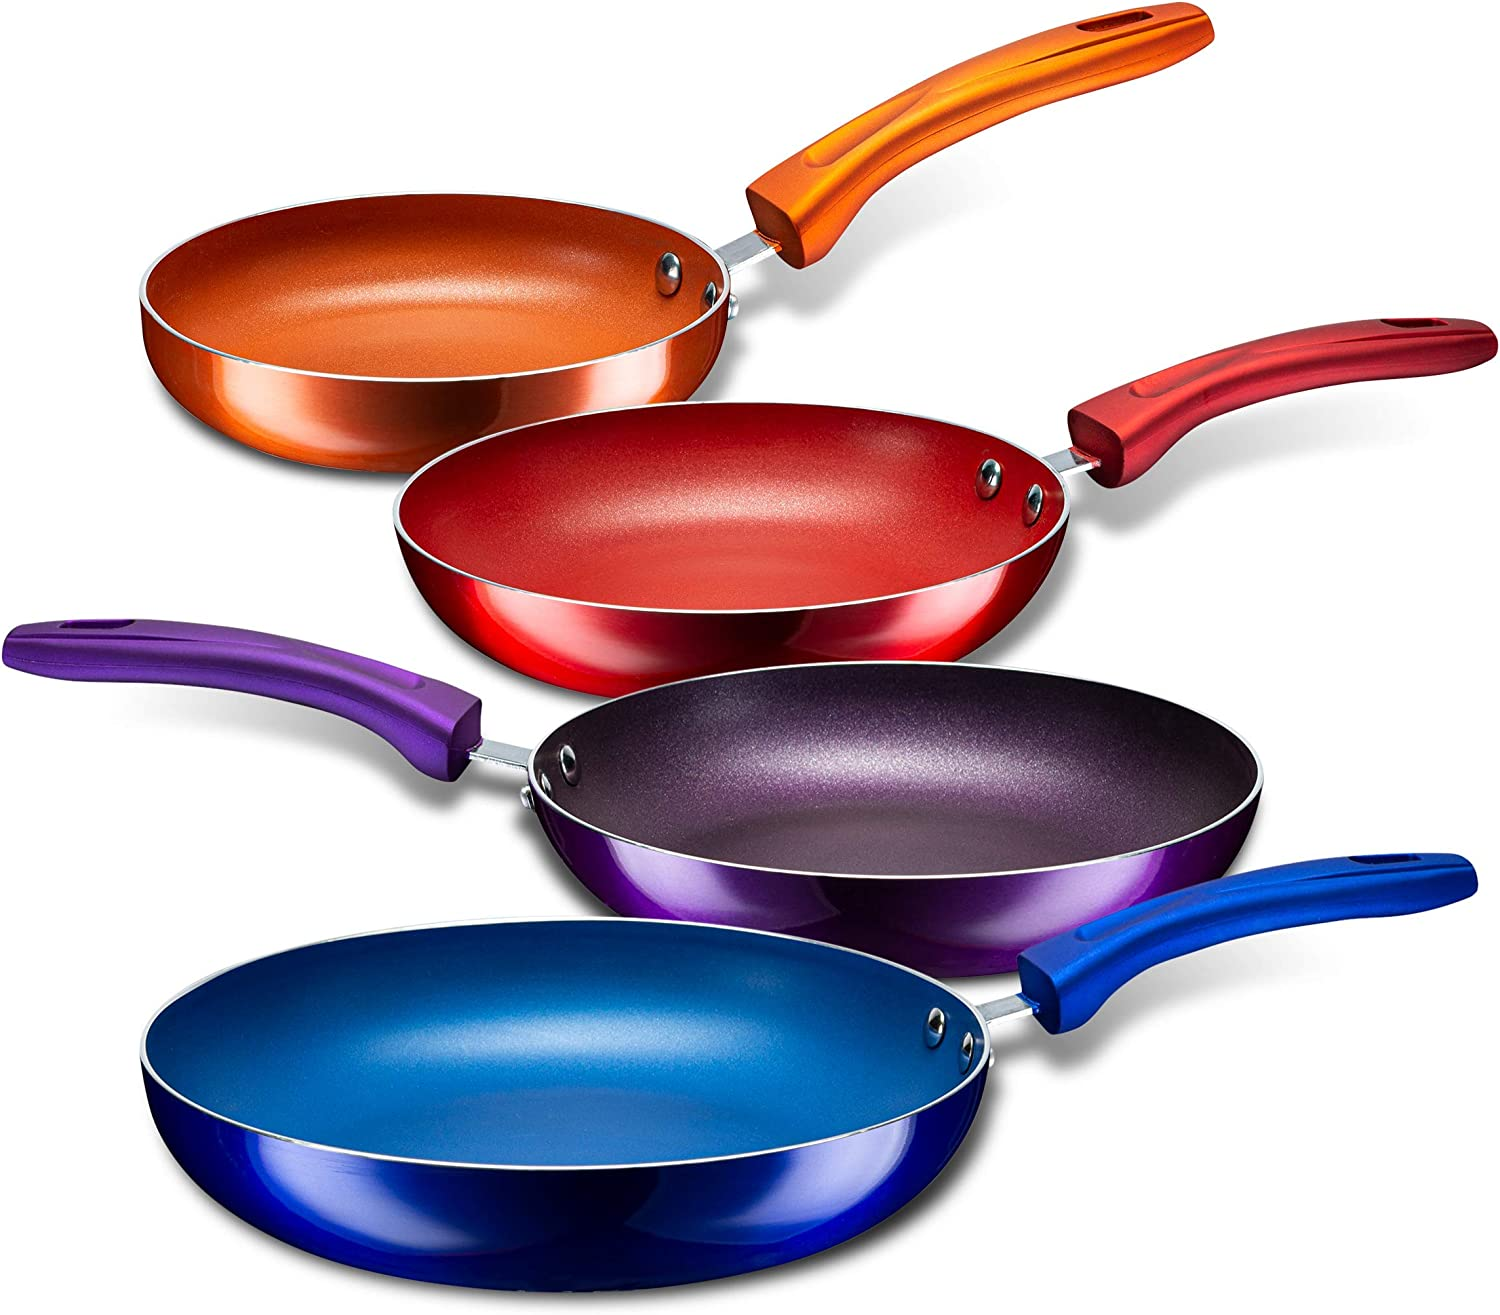 Amazon Com Chef S Star Aluminum Nonstick Pans Set For Sauteing And Frying Nonstick Skillet With Stay Cool Handle Frying Pans Set Of 4 Multi Color Kitchen Dining